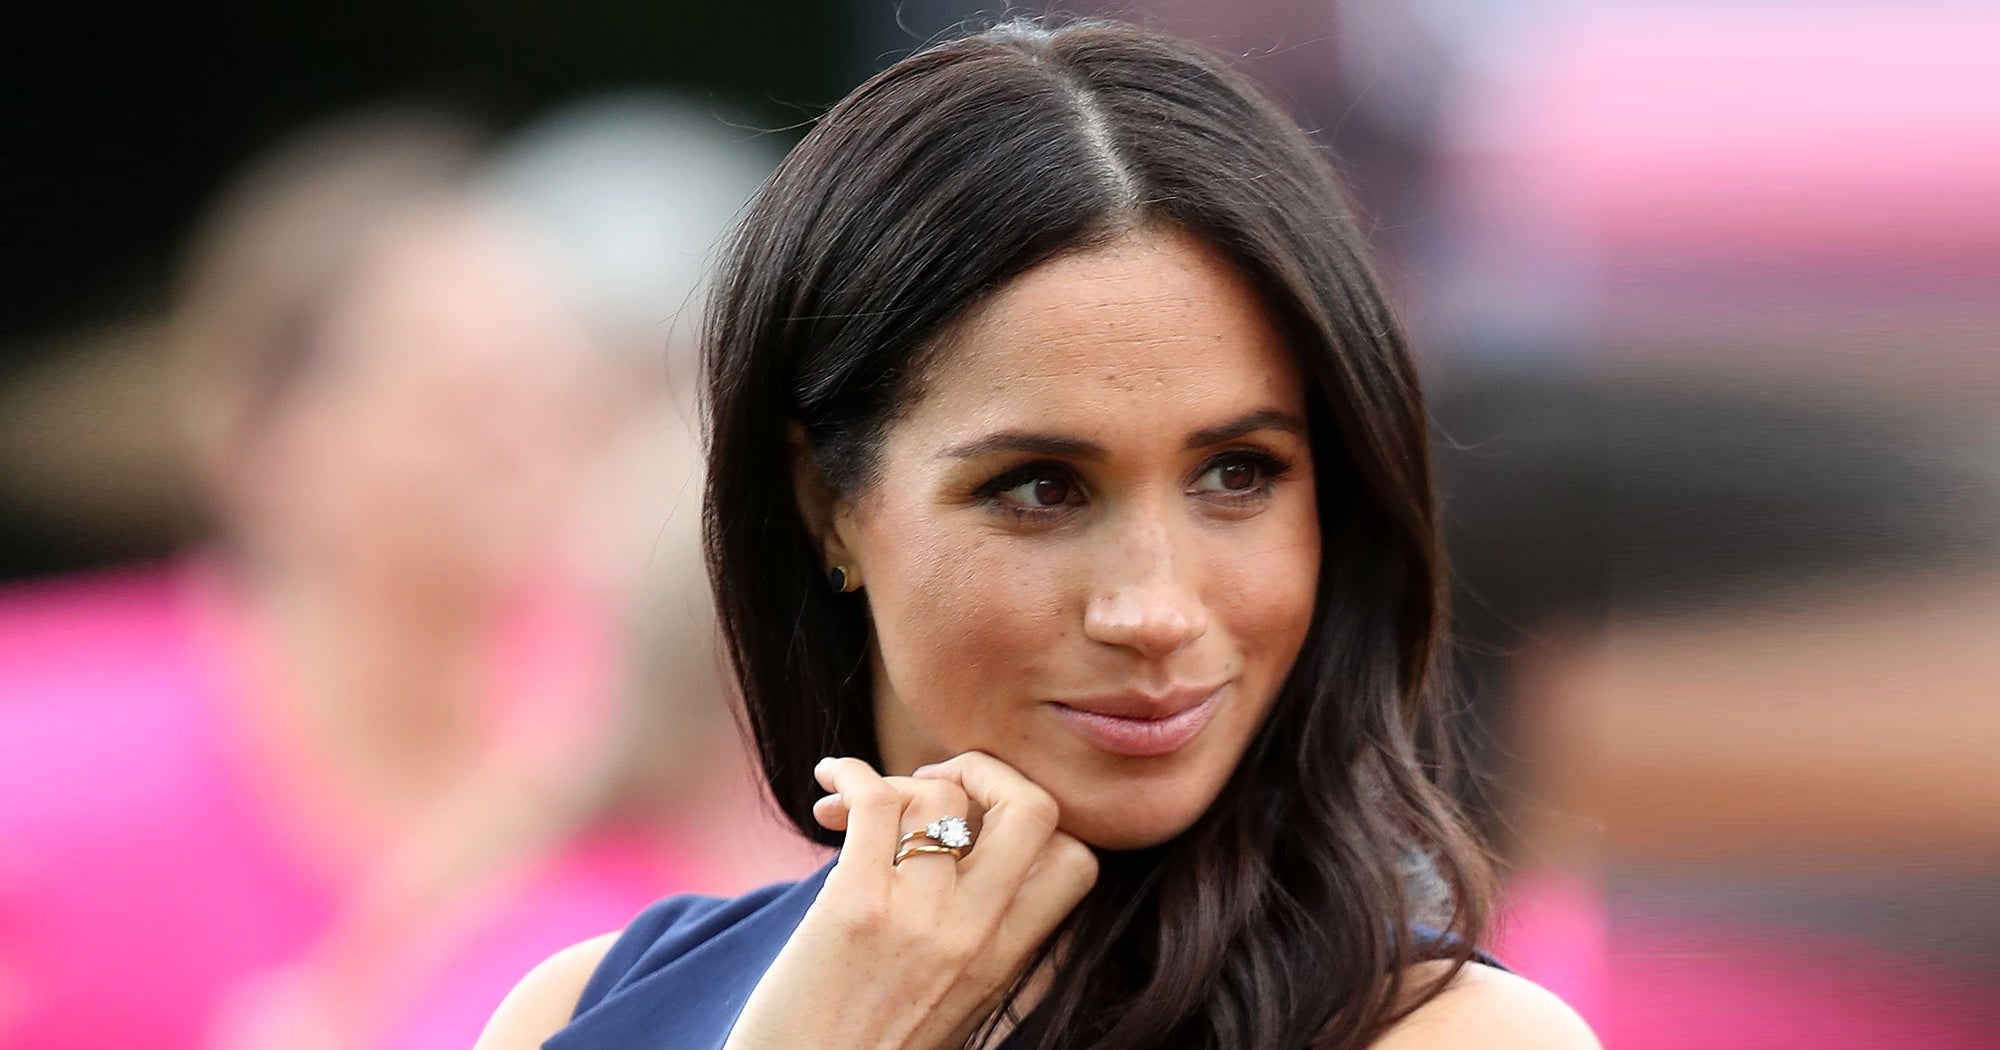 Meghan Markle Pays Tribute To Friend Misha Nonoo After Her Wedding